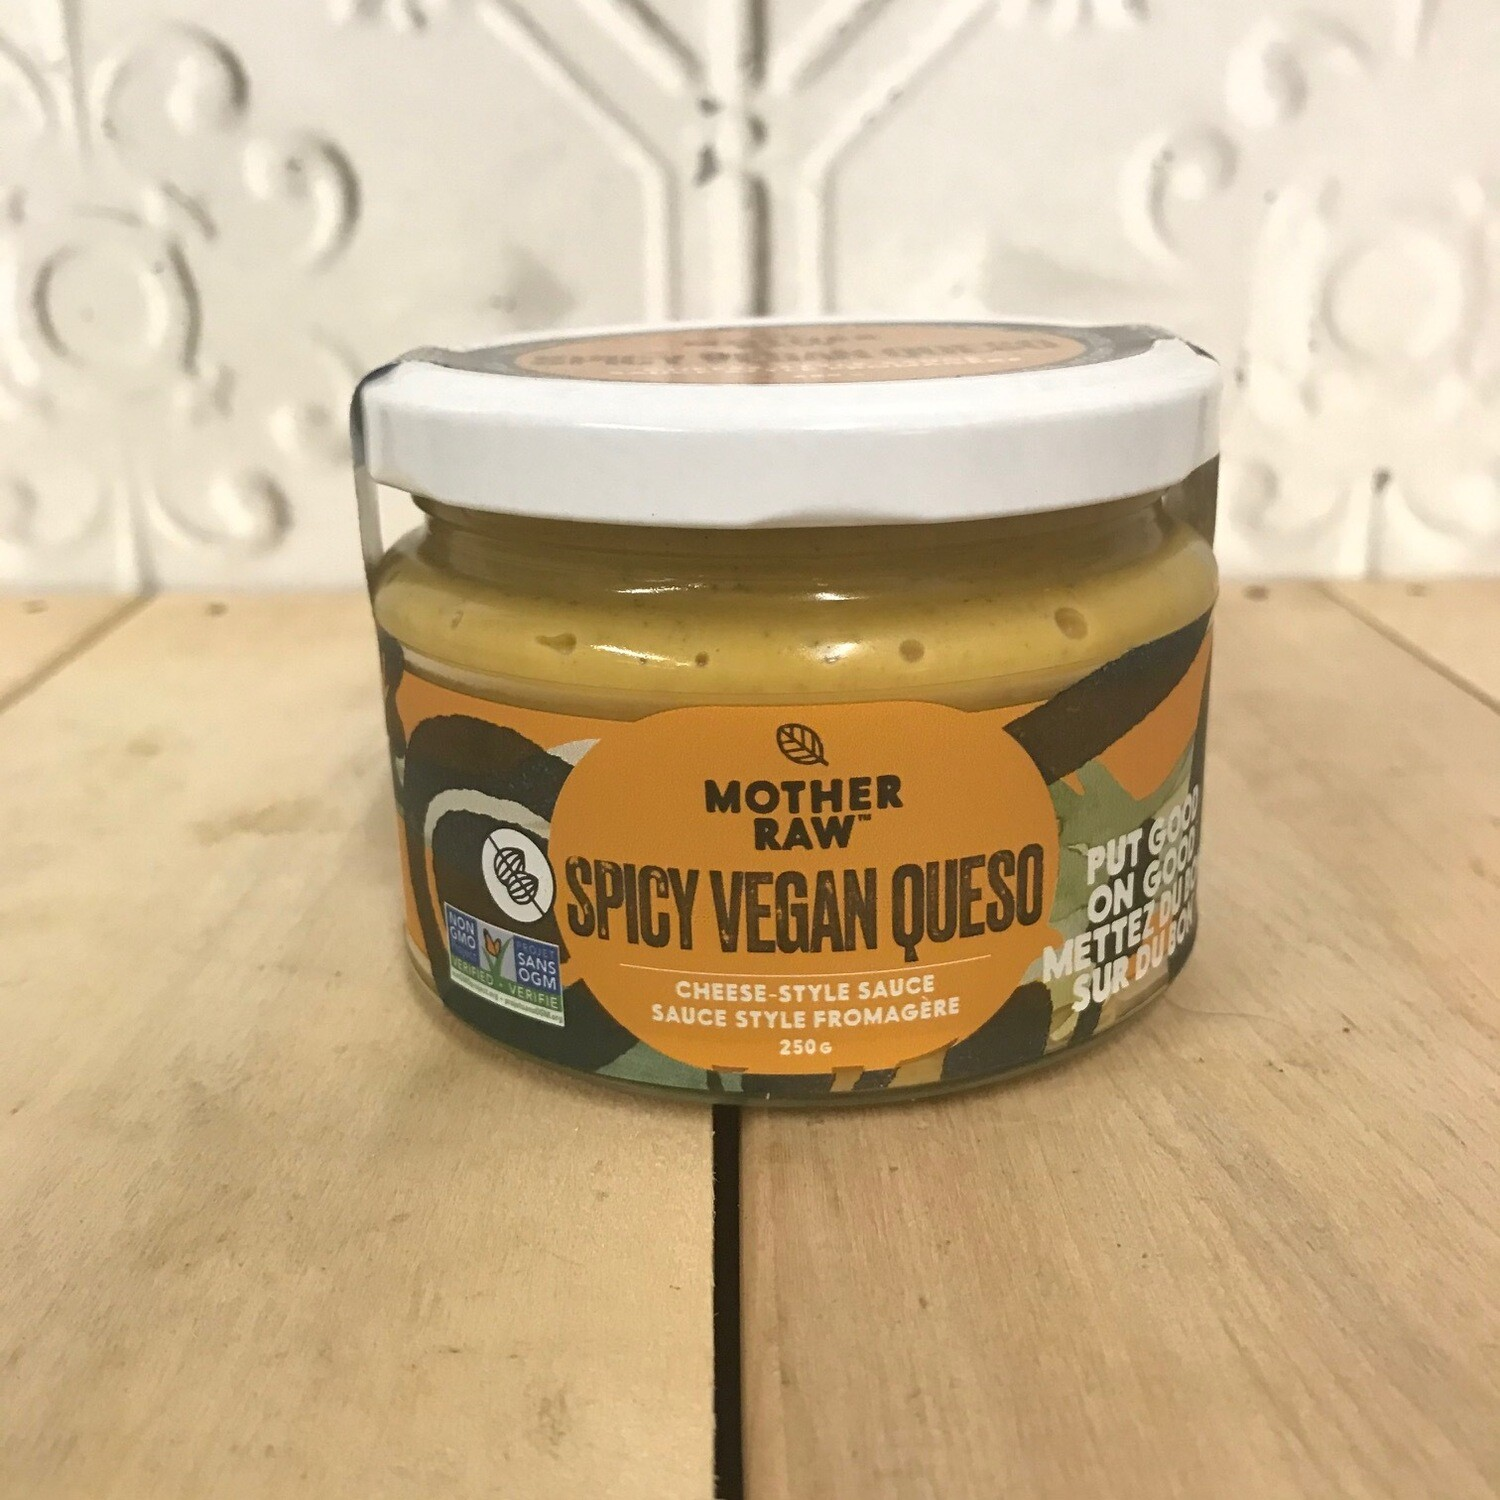 MOTHER RAW Spicy Vegan Queso